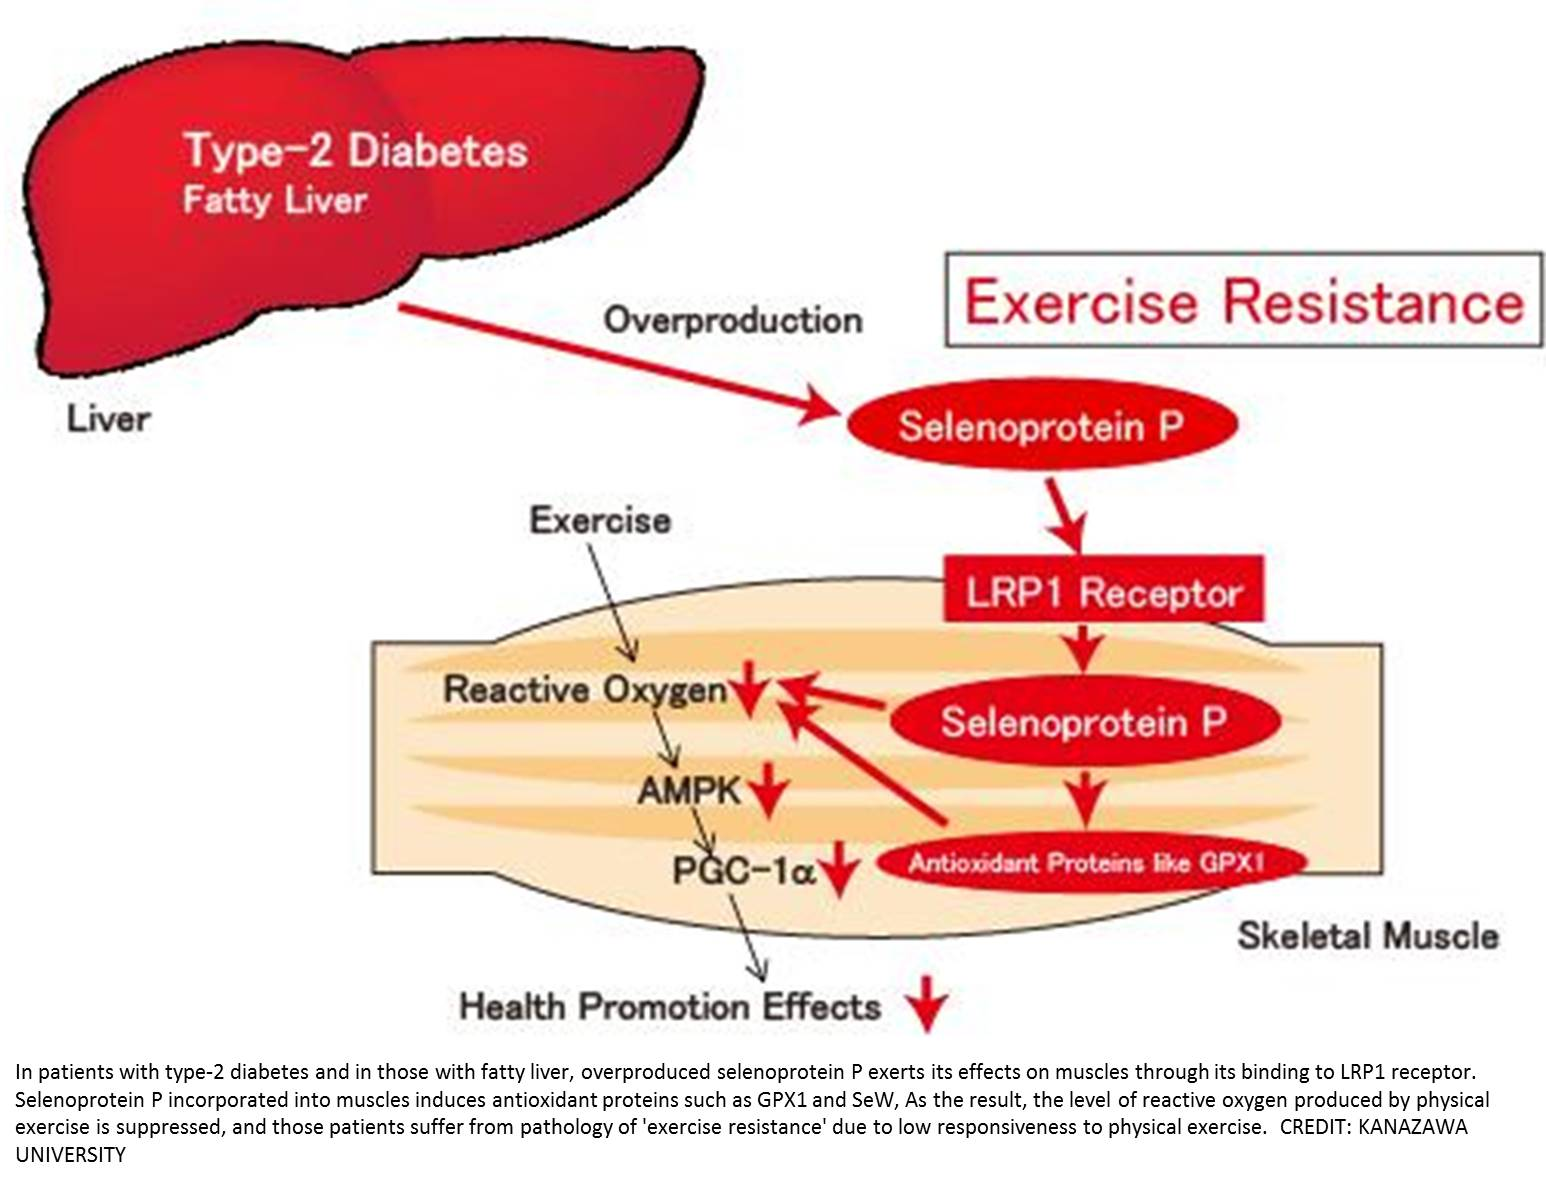 Why does the same exercise exert effects on individuals differently?